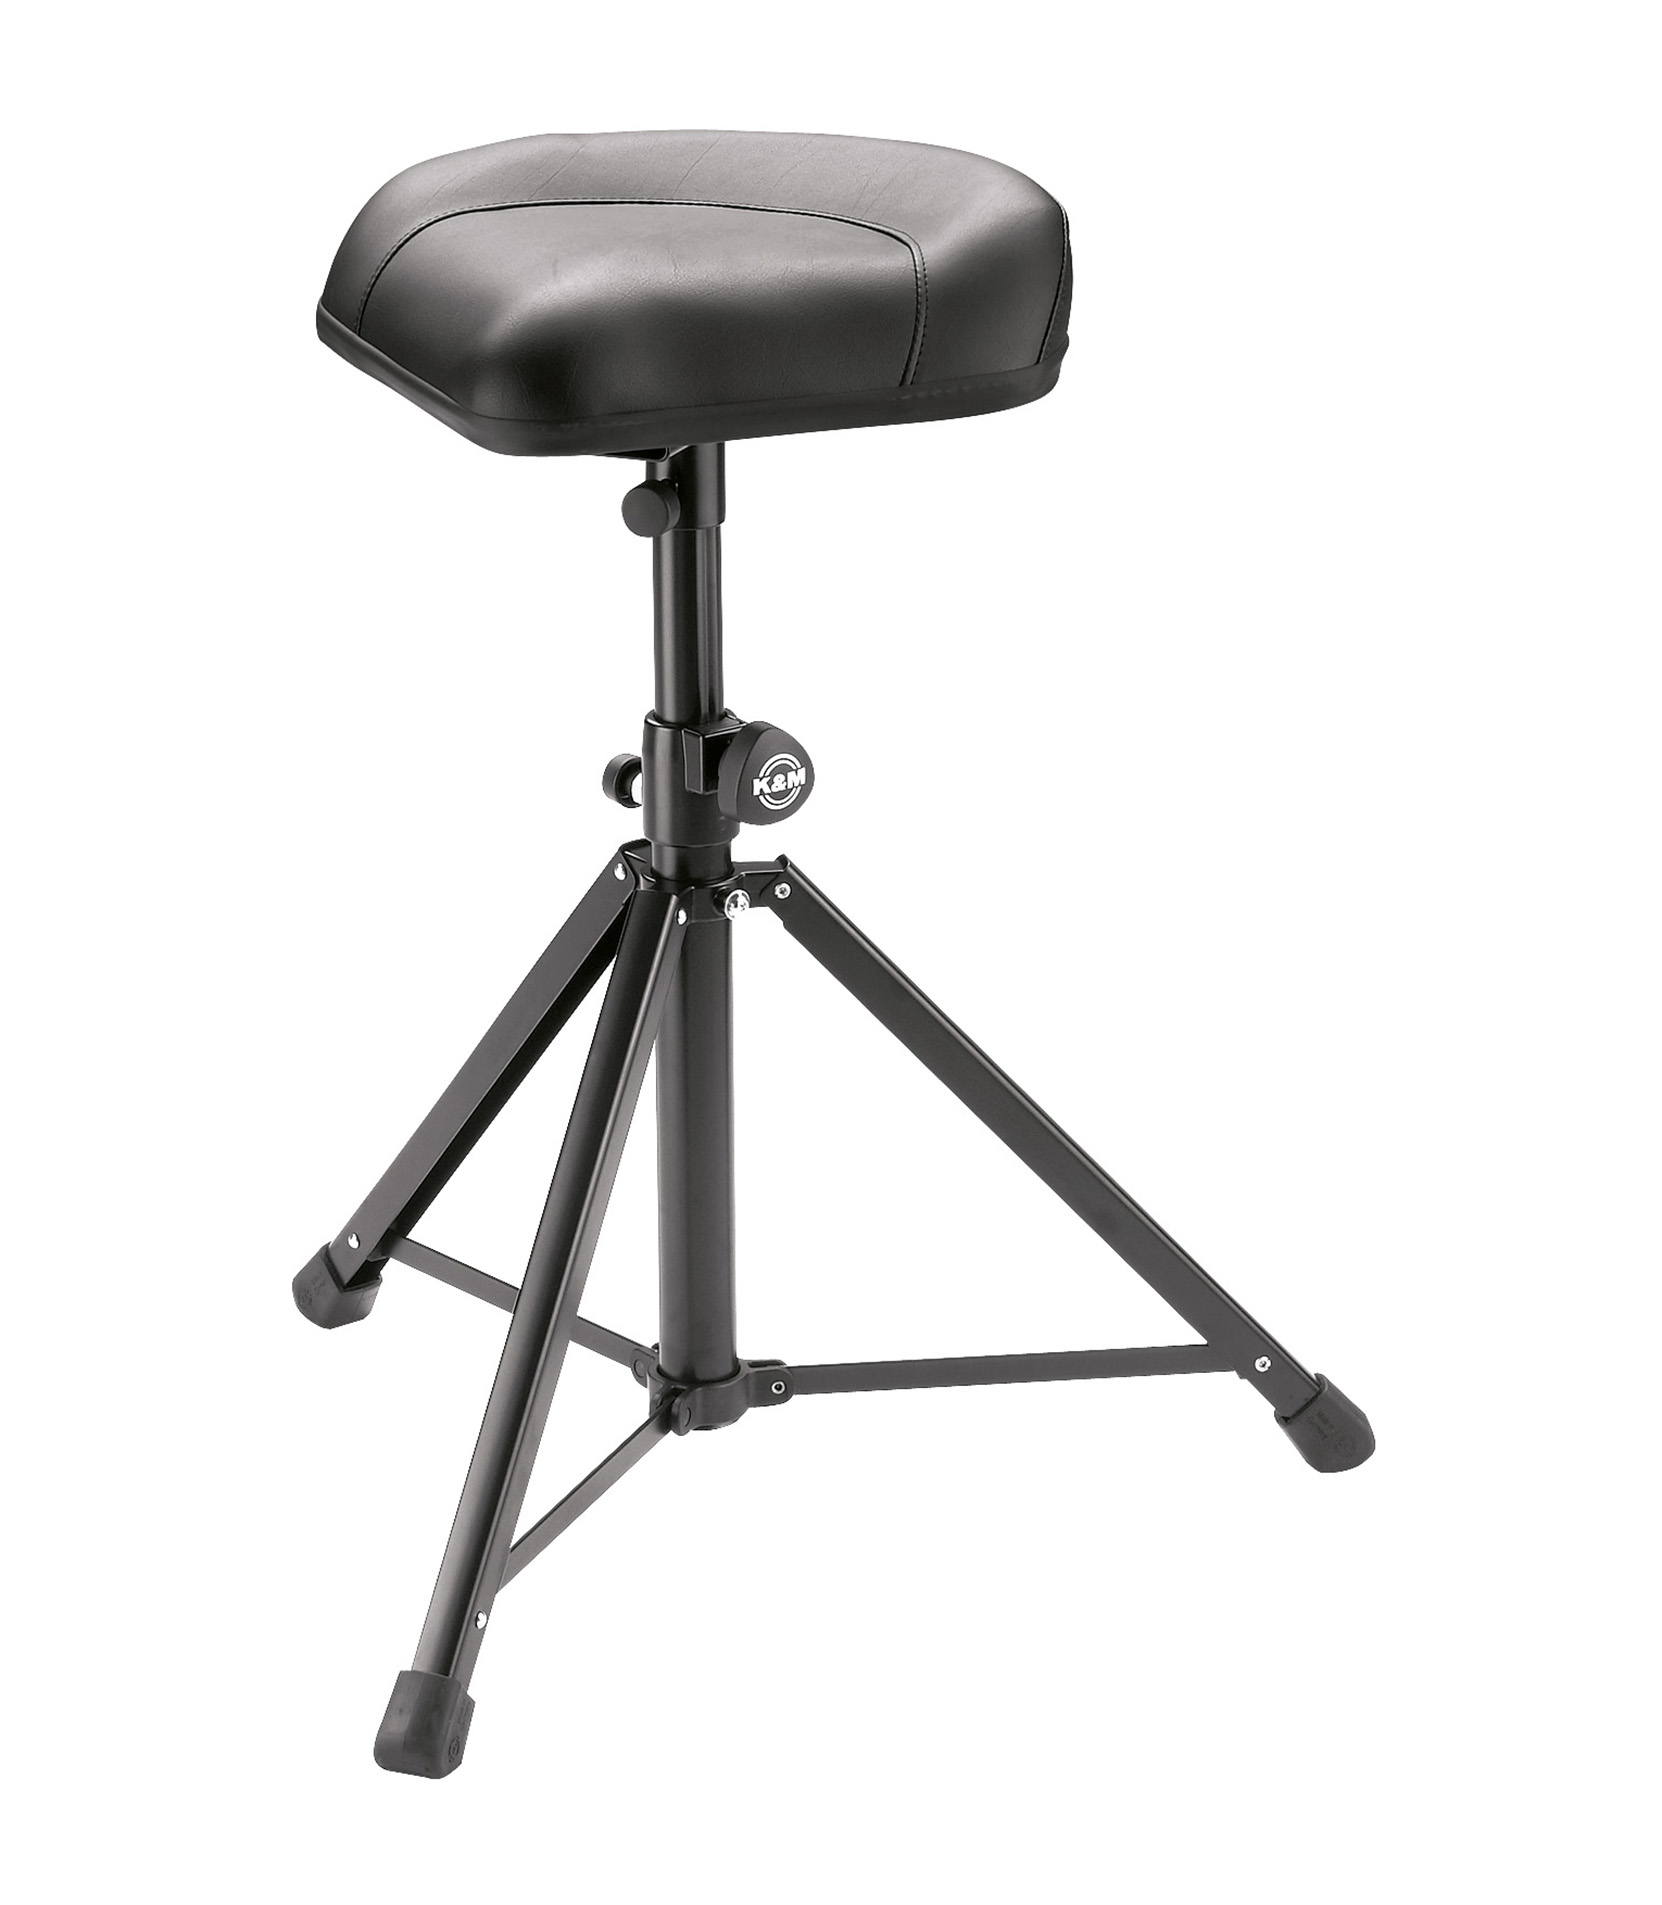 Buy K&M - 14052 000 55 Multi purpose stool ideal for keyboa